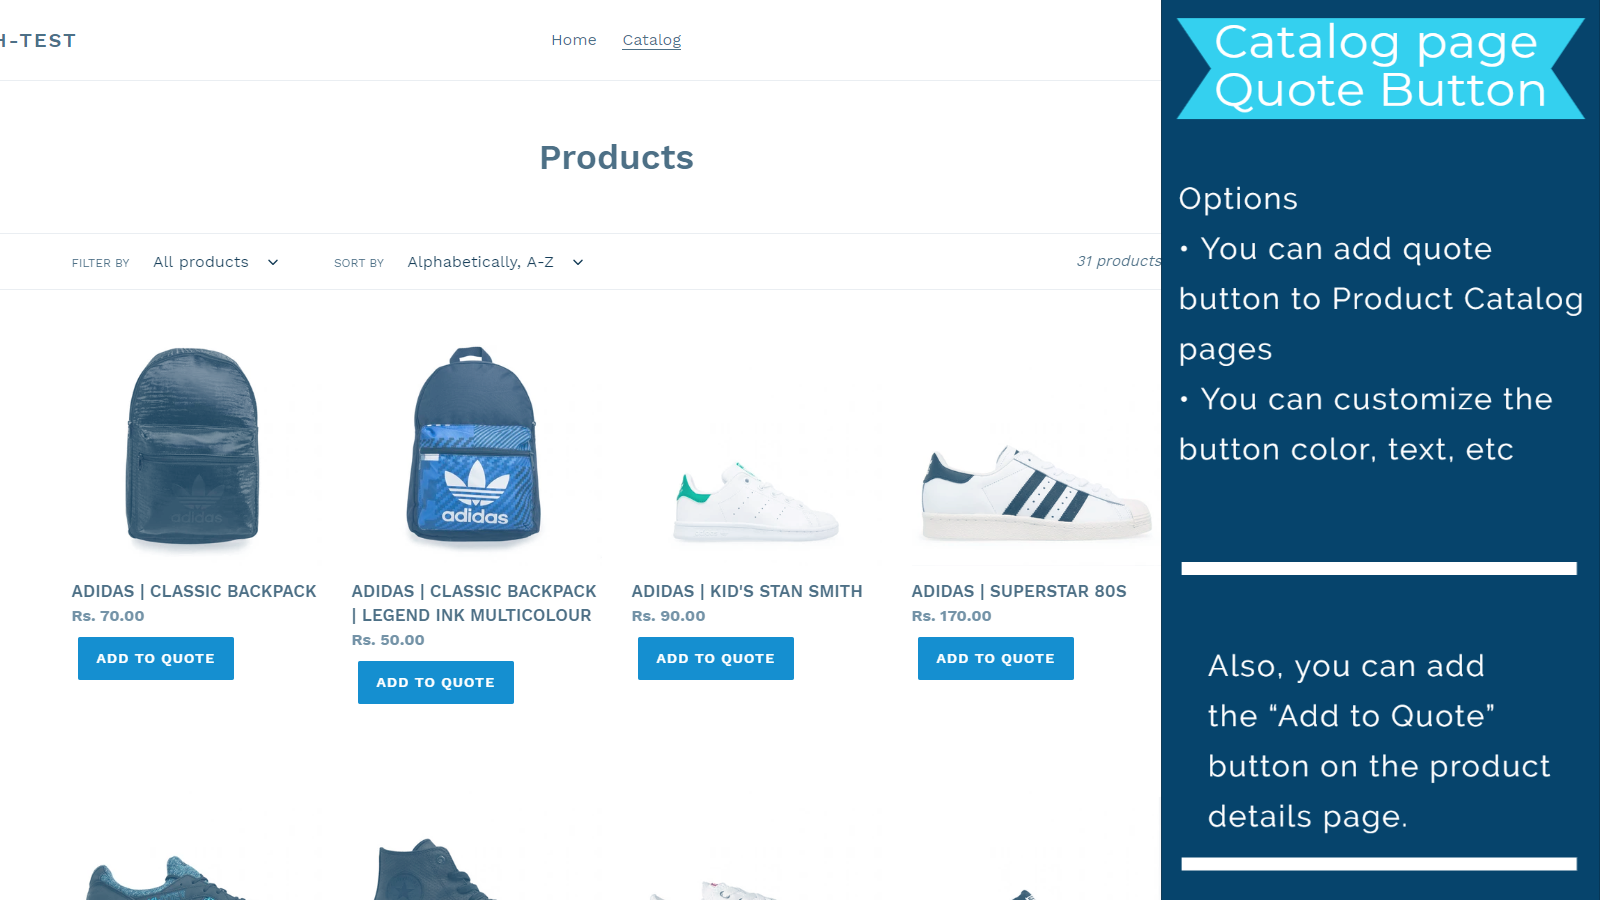 Add to quote button in Product Catalog page